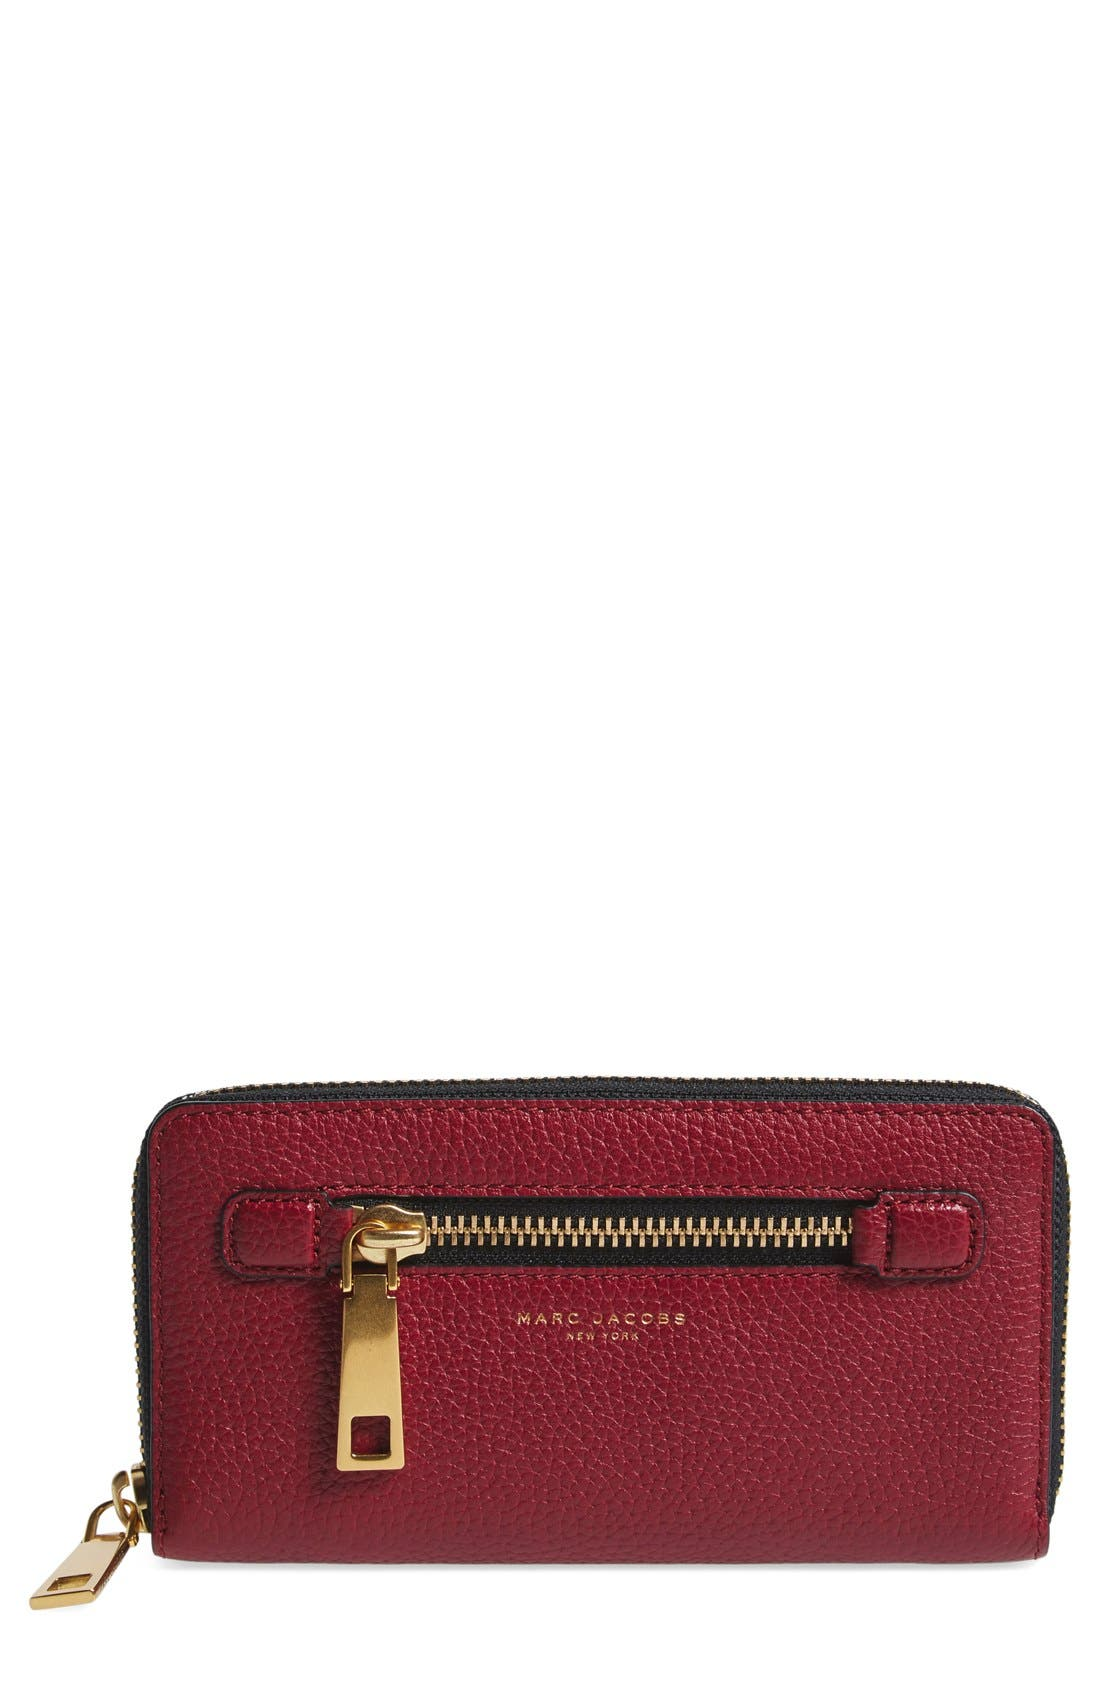 'Gotham' Leather Continental Wallet,                             Main thumbnail 1, color,                             Merlot